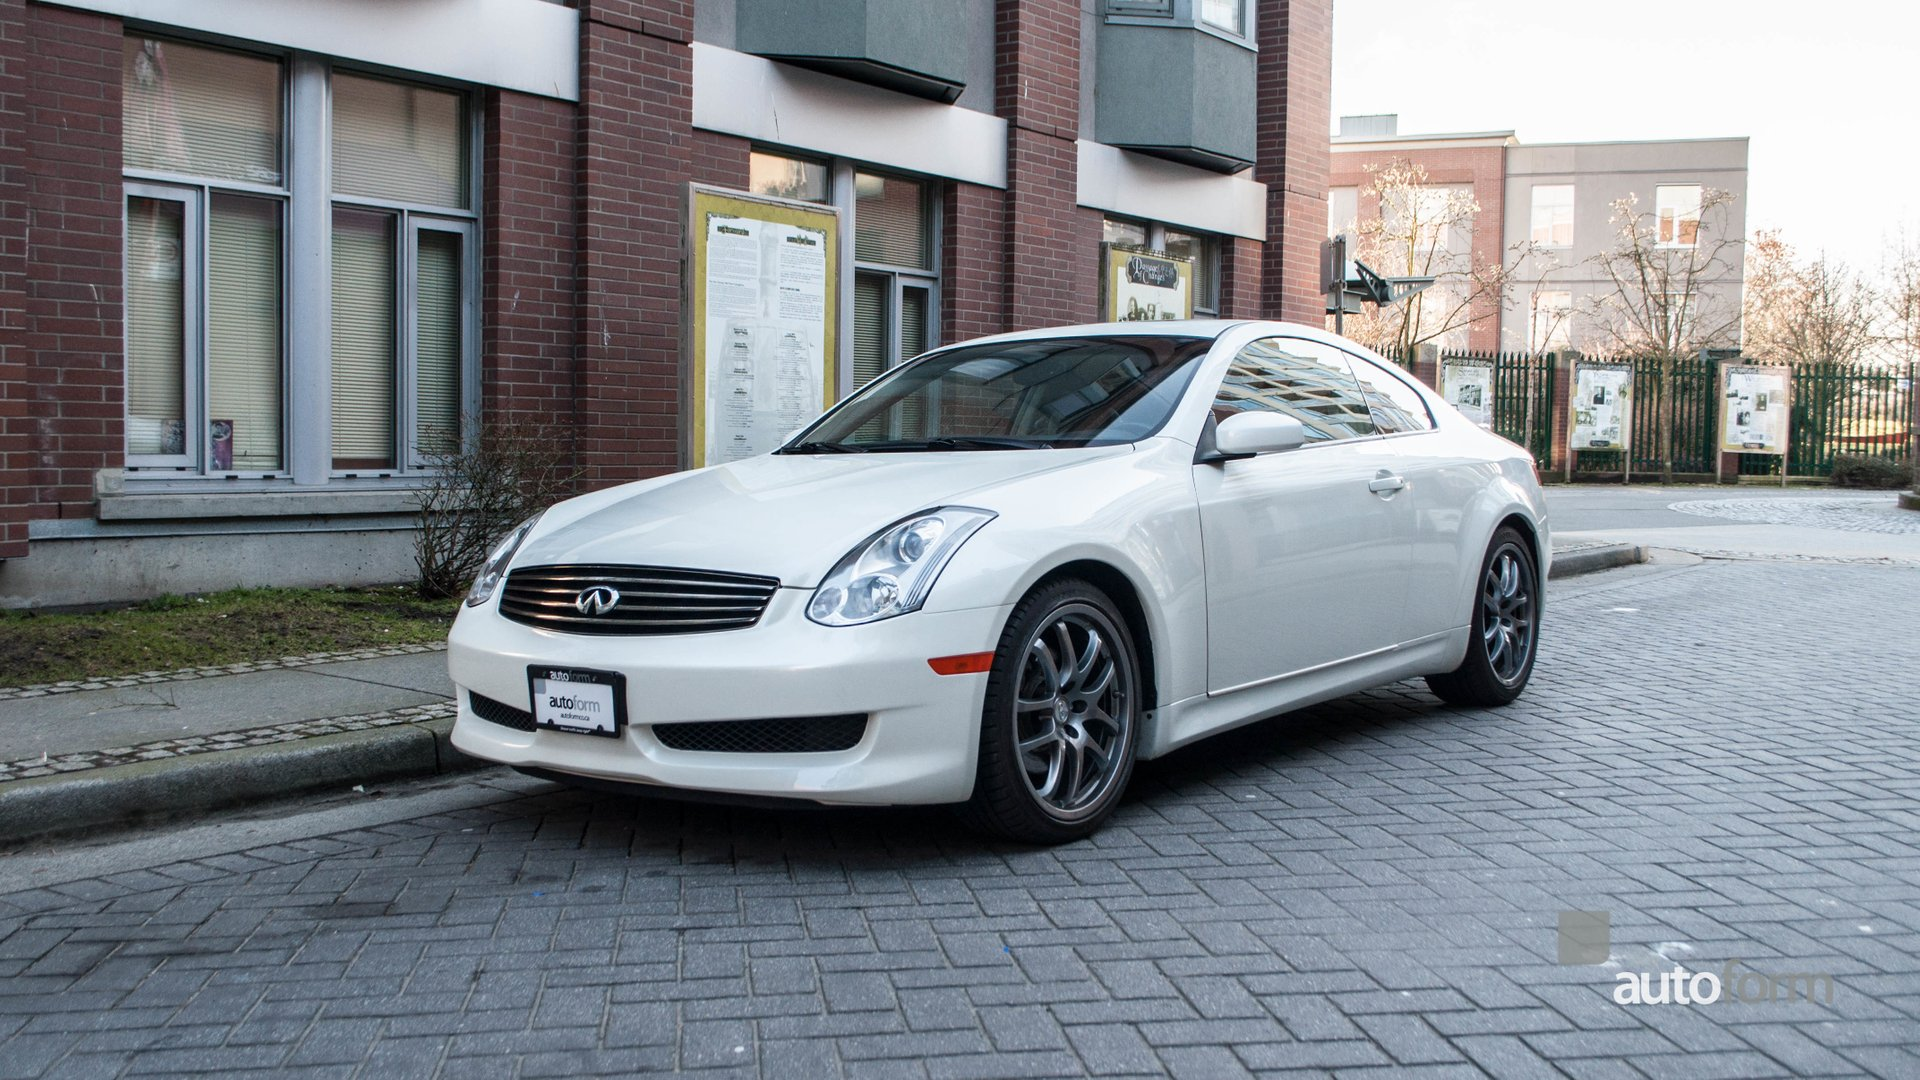 2007 infiniti g35 coupe 2dr manual